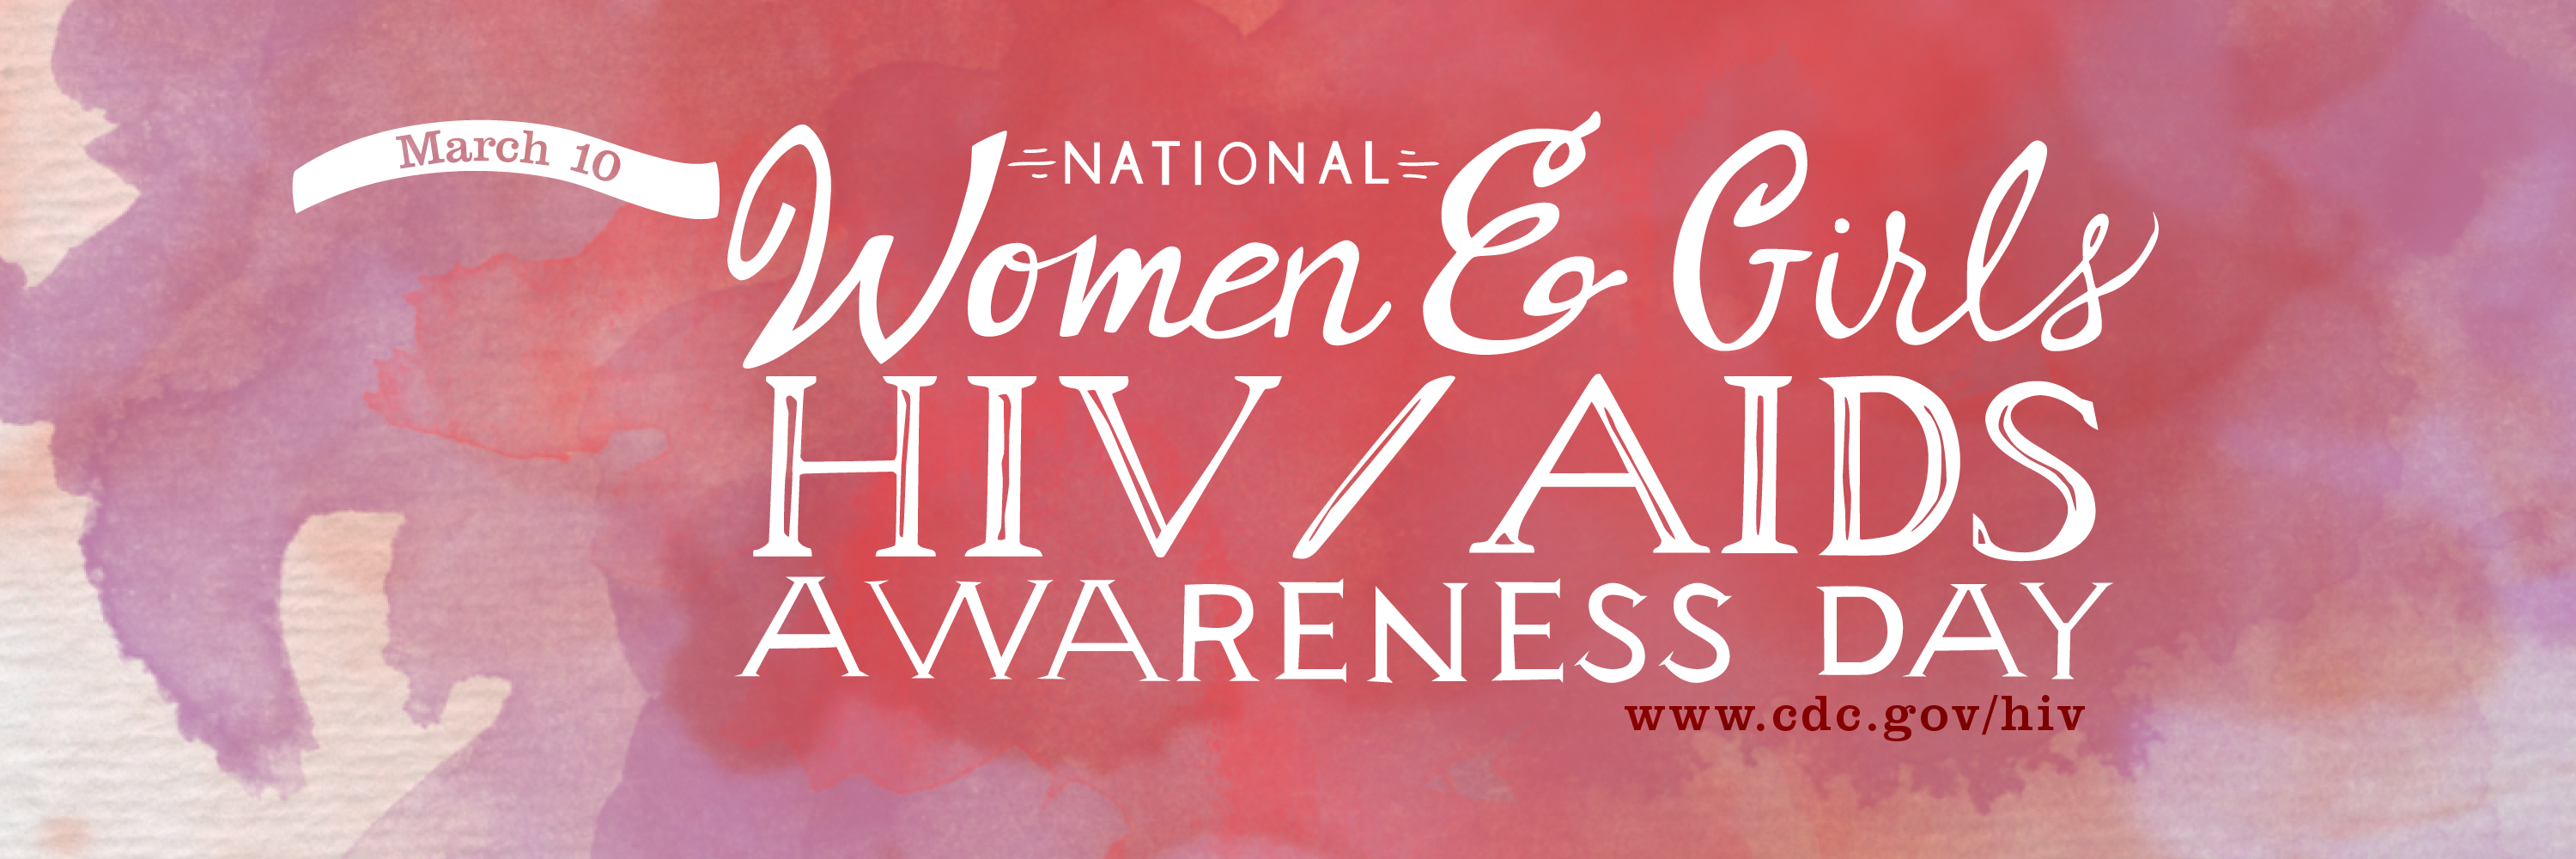 March 10 - National Women and Girls HIV/AIDS Awareness Day, www.cdc.gov/hiv